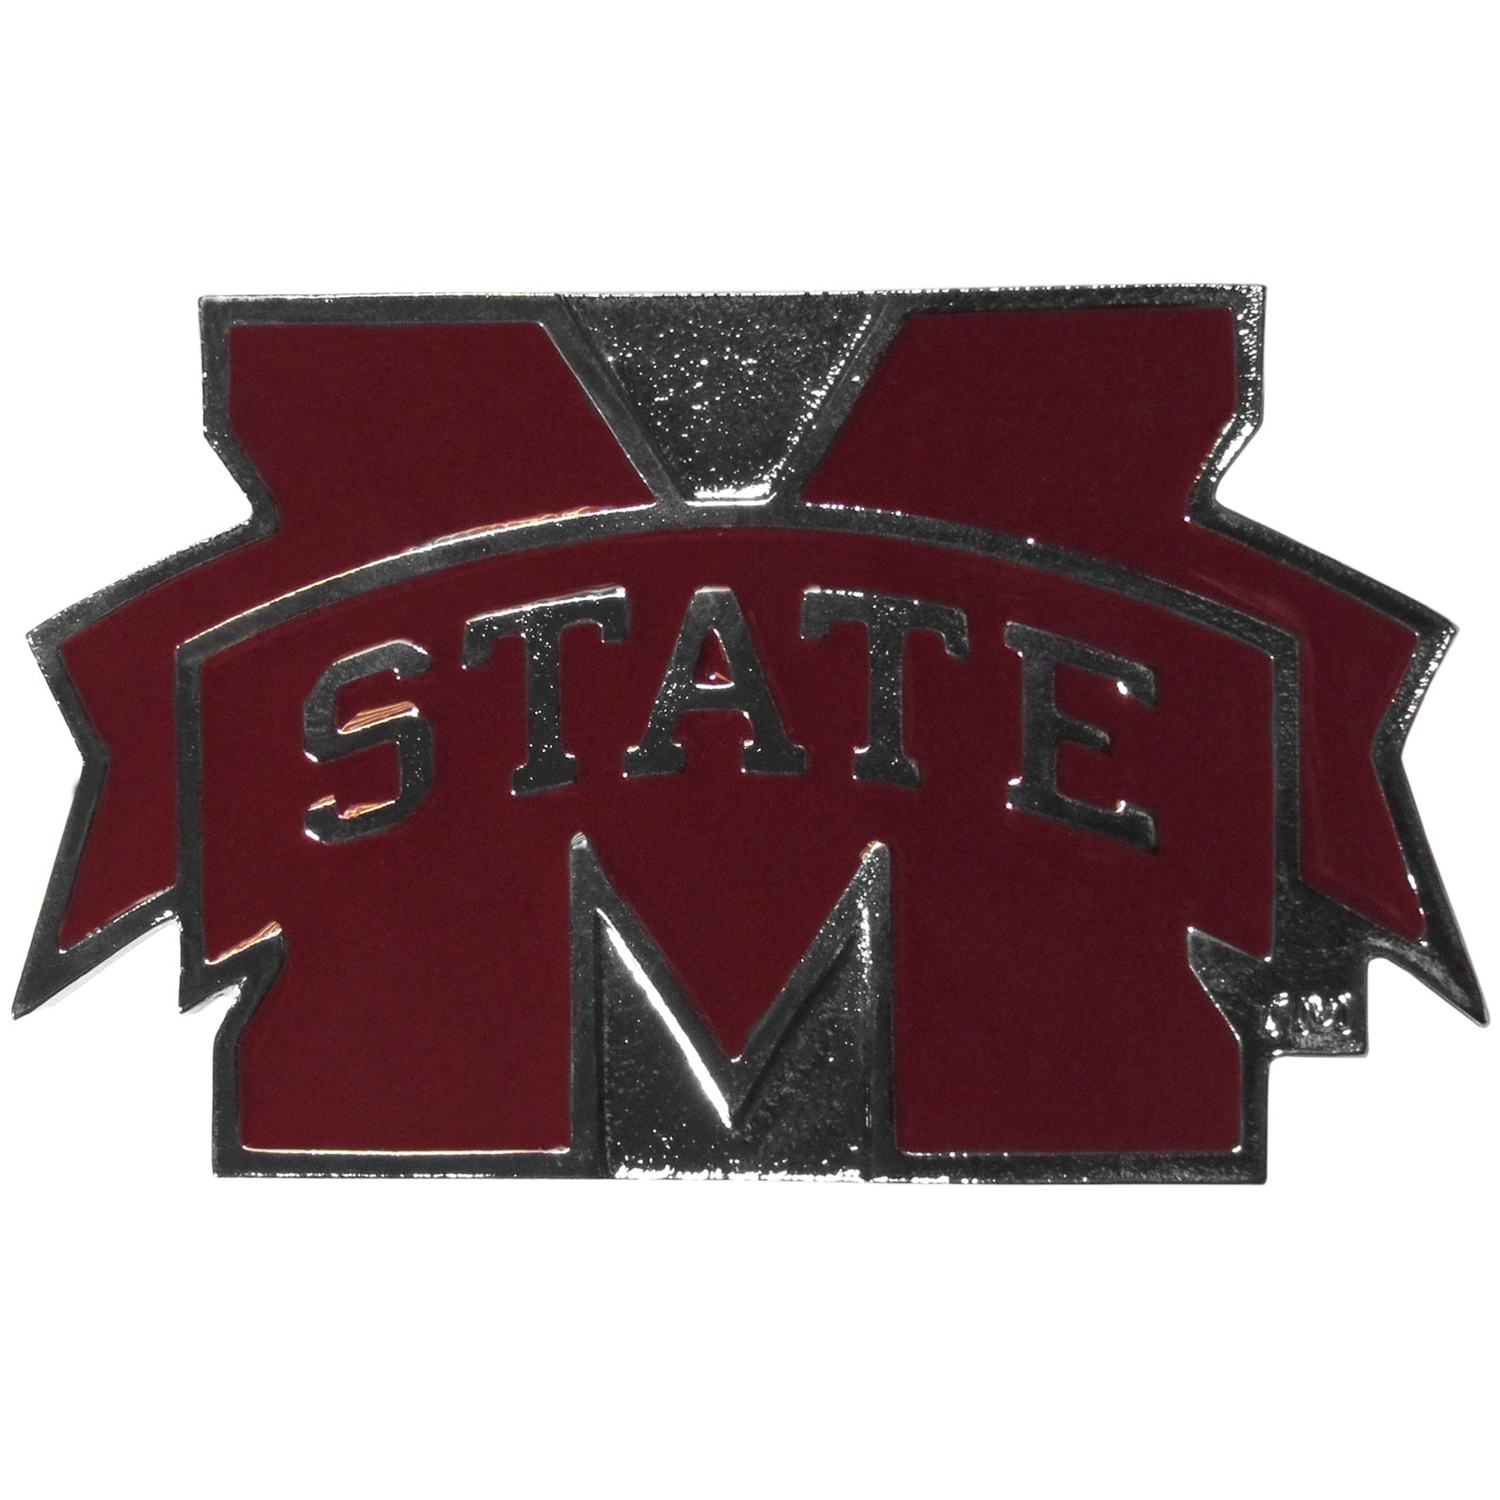 "Collegiate Hitch Cover - Mississippi St. Bulldogs - Our collegiate hitch cover is a durable and attractive way to show off your school spirit. The hitch fits a 2"" hitch receiver. Thank you for shopping with CrazedOutSports.com"